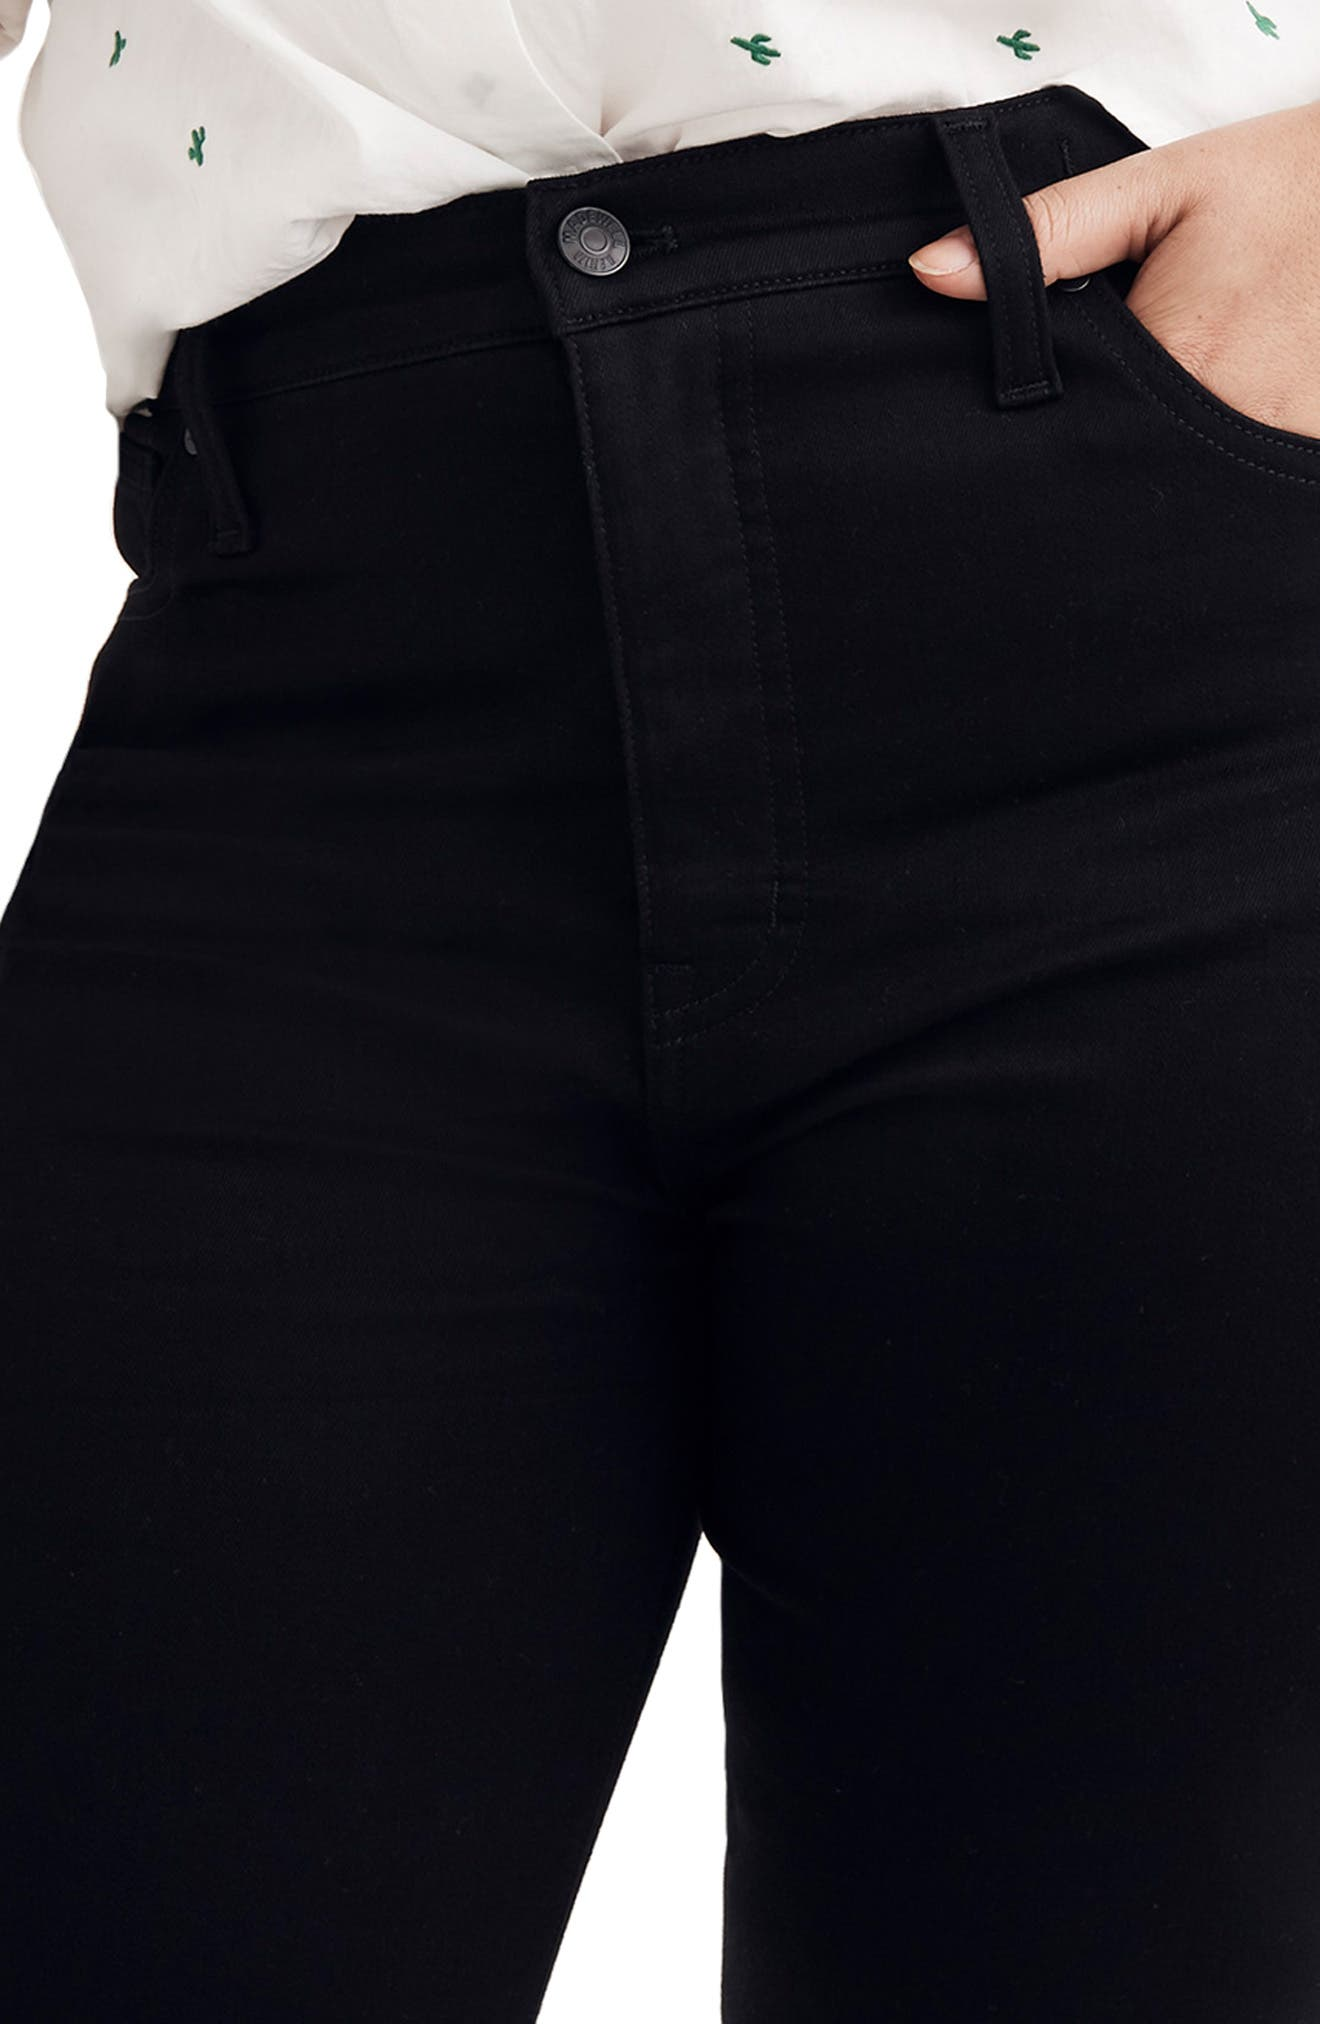 10-Inch High Rise Skinny Jeans,                             Alternate thumbnail 8, color,                             CARBONDALE